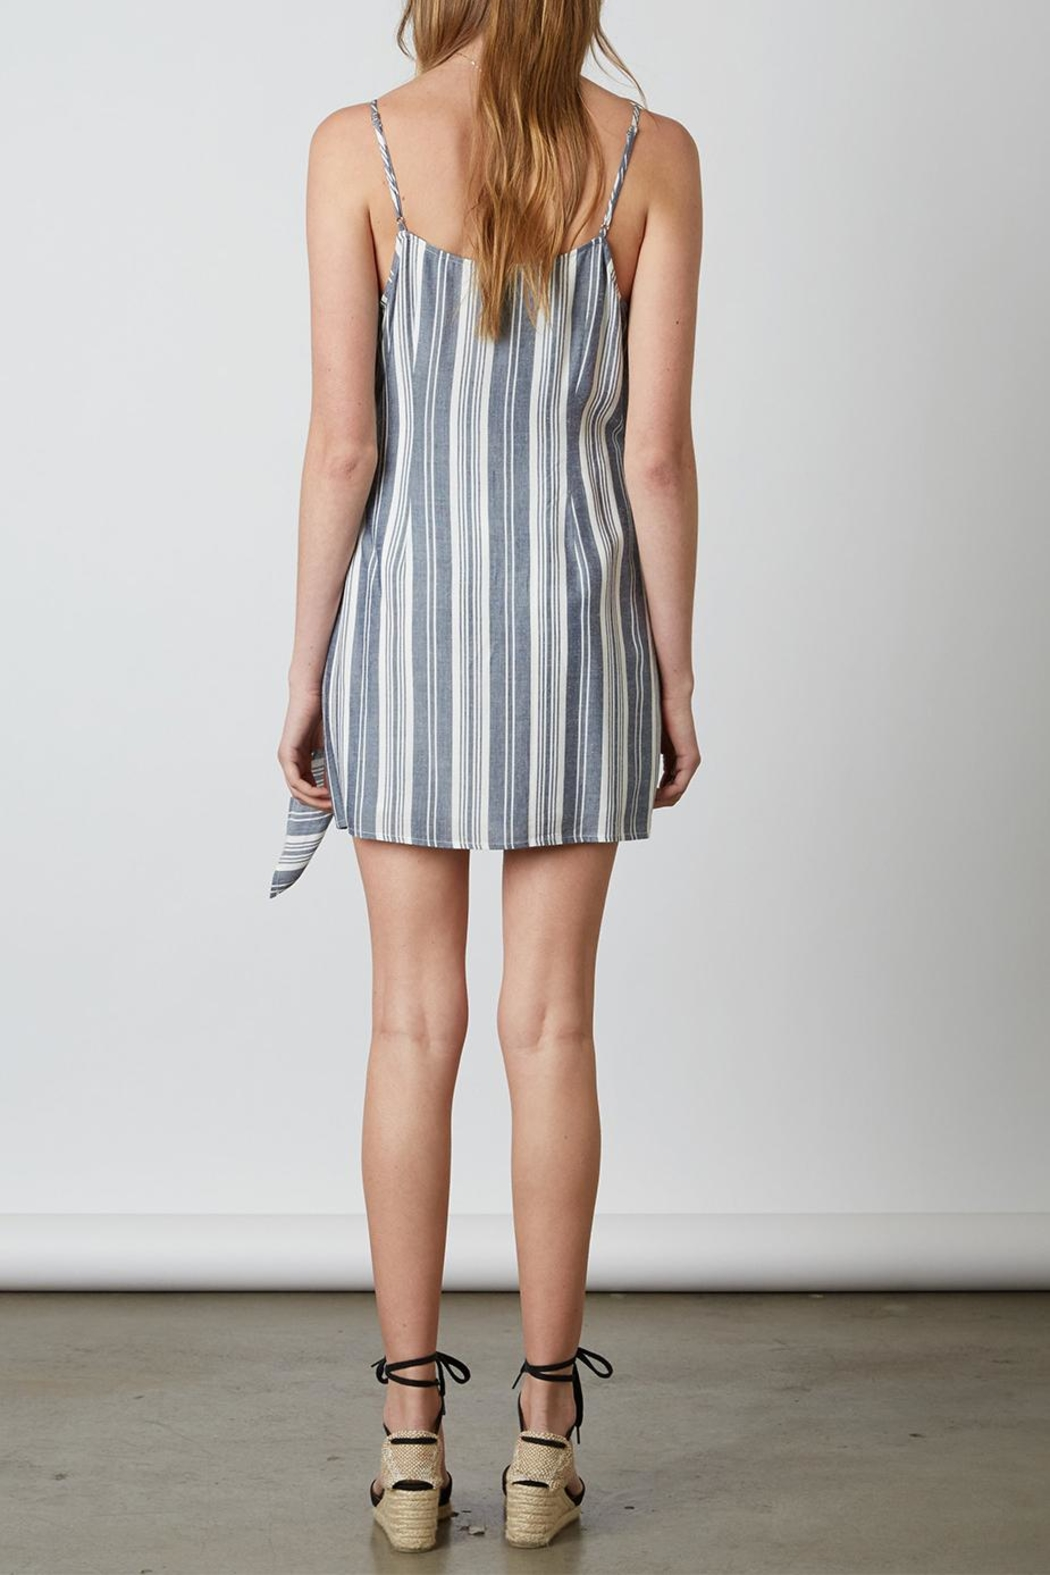 Cotton Candy Stripe Wrap Dress - Front Full Image